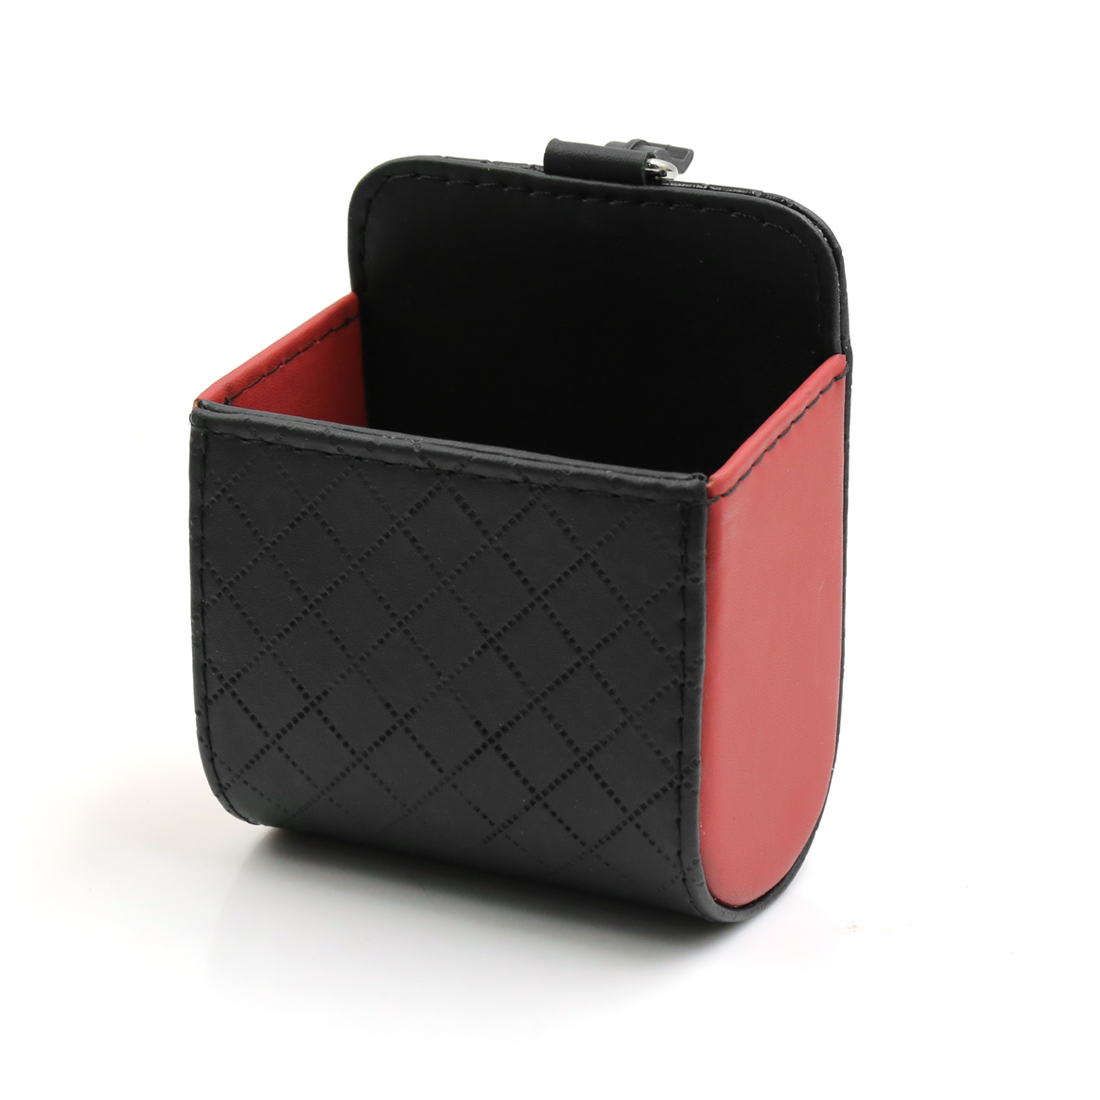 Auto Car Fiber Carbon Pattern Air Vent Faux Leather Phone Pouch Holder Case Bag Red Black